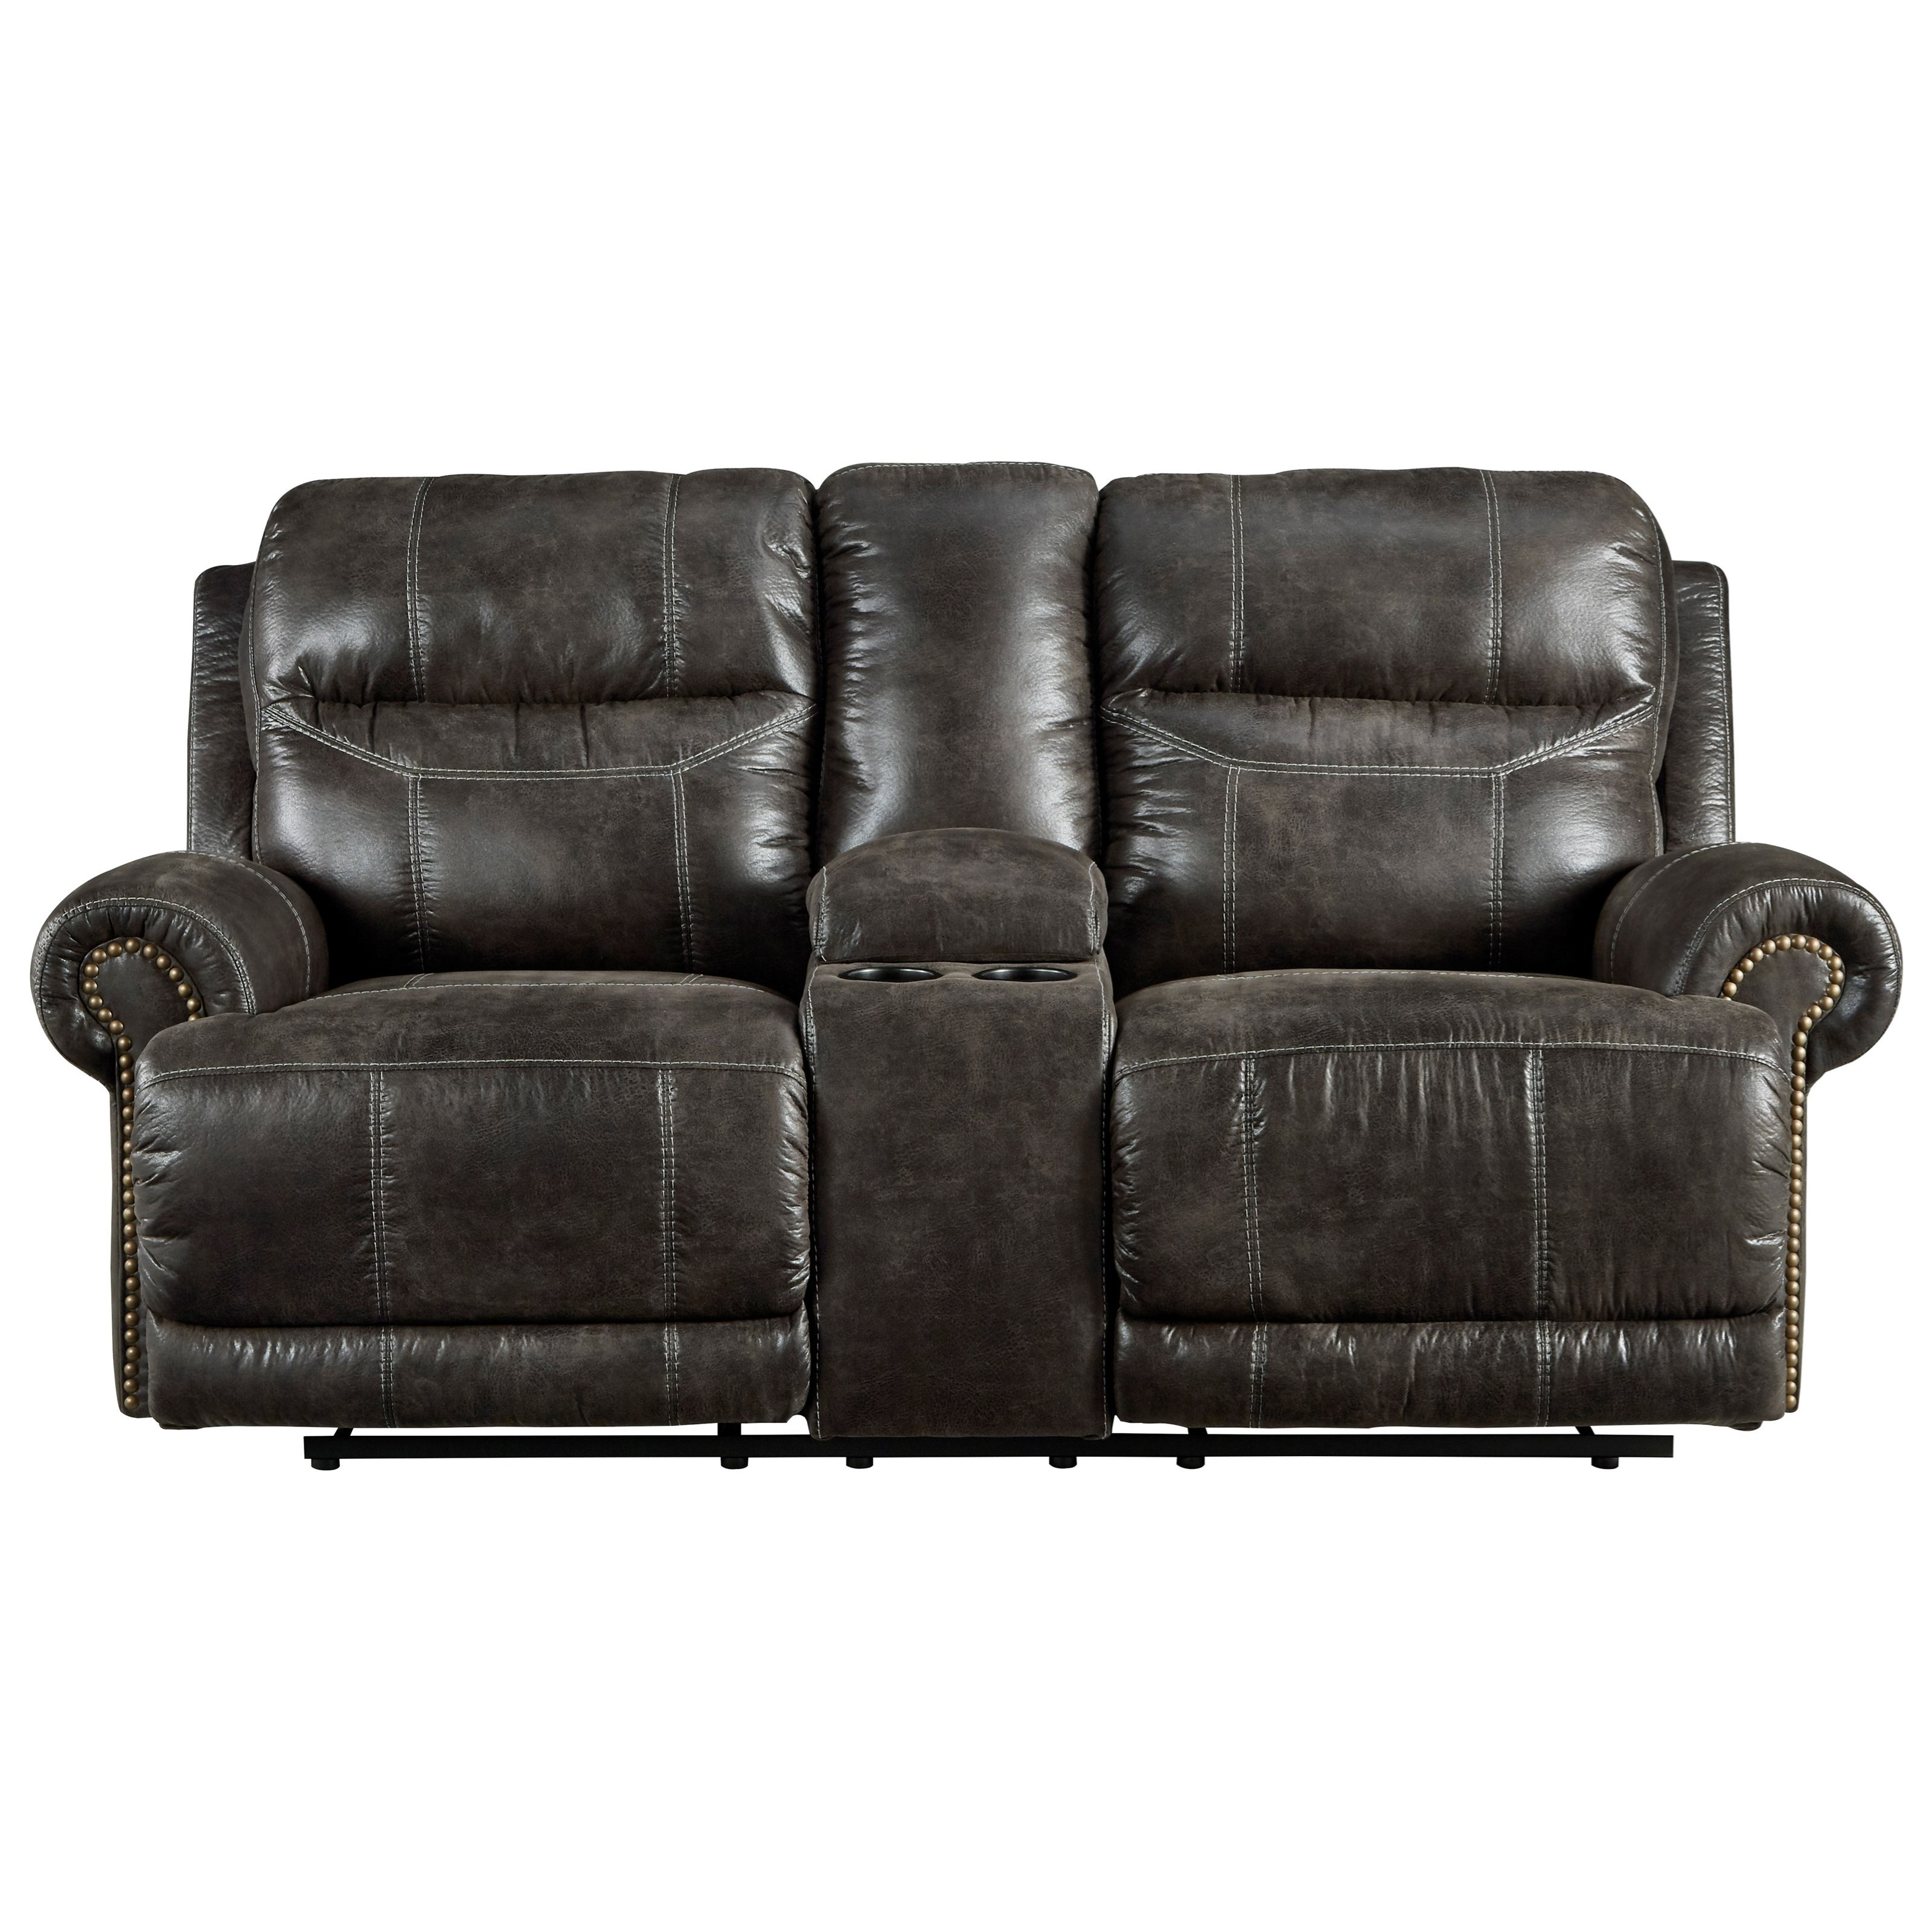 Grearview Power Reclining Loveseat with Console by Ashley (Signature Design) at Johnny Janosik